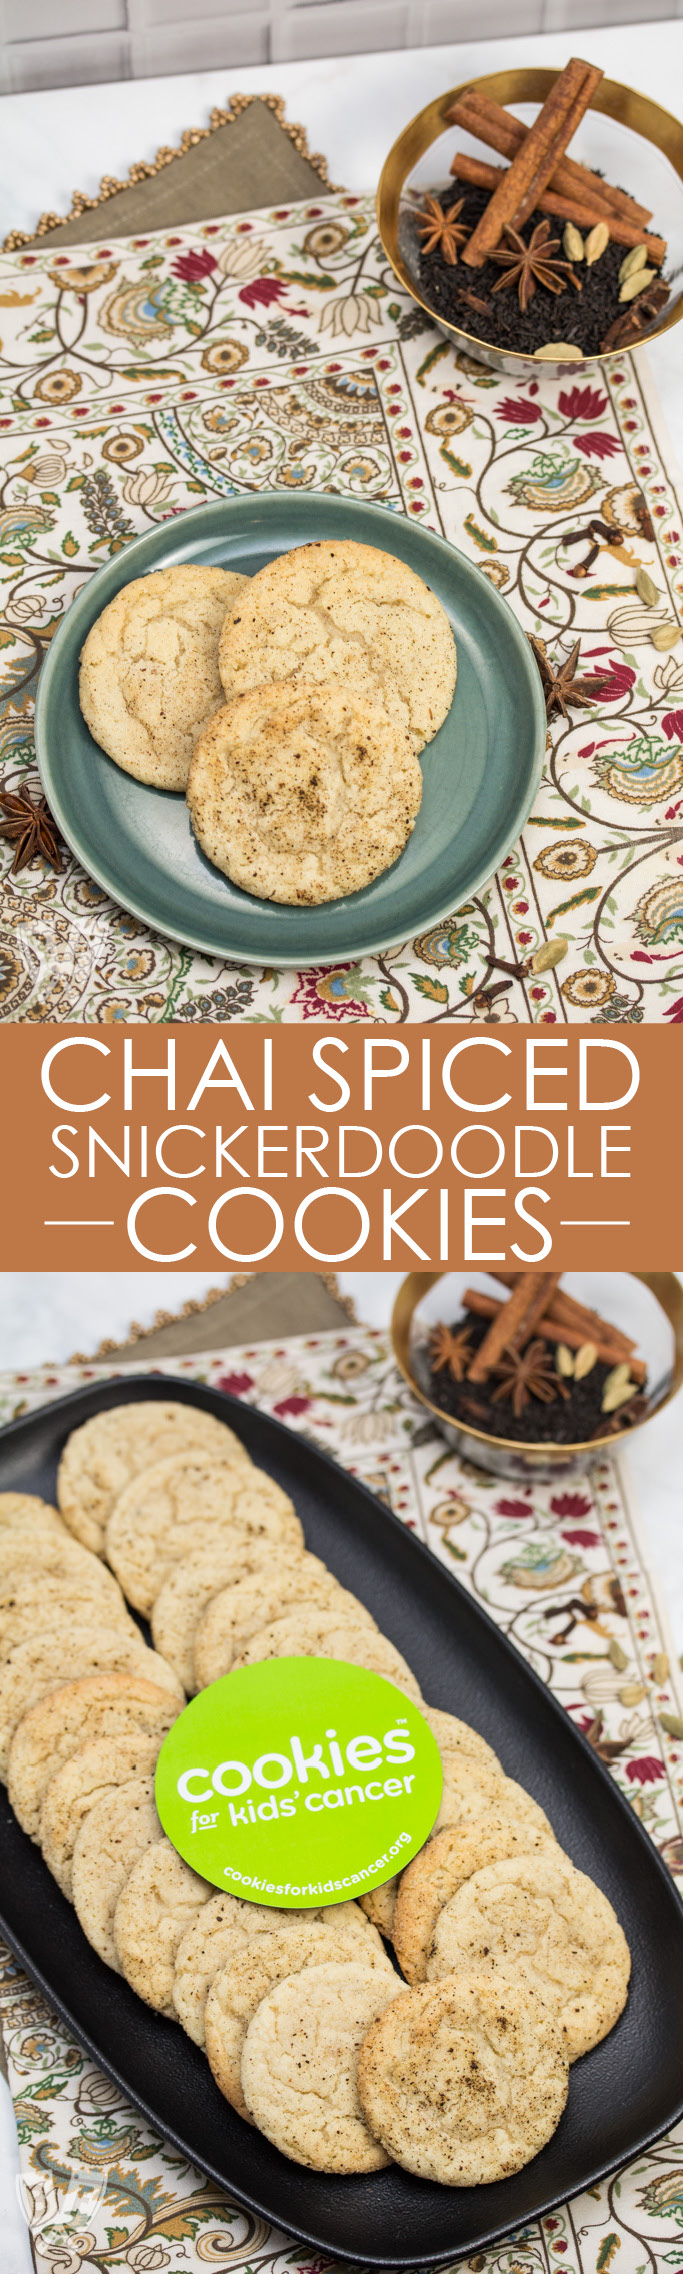 2 overhead photos of platters of Chai Spiced Snickerdoodle Cookies with a bowl of tea leaves and spices in the background.